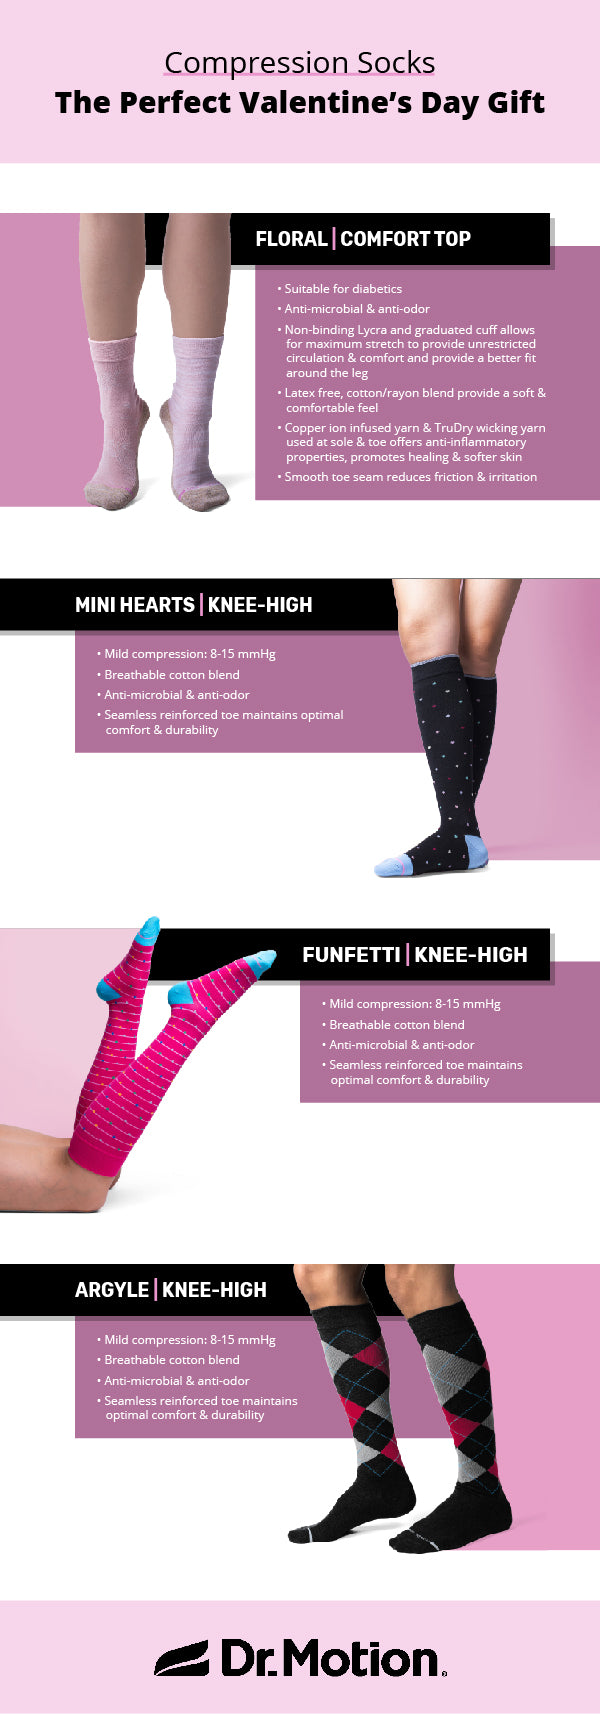 Valentine's day gifts for runners, cute compression socks, fun compression socks for women, graduated compression, cool socks, perfect valentine's